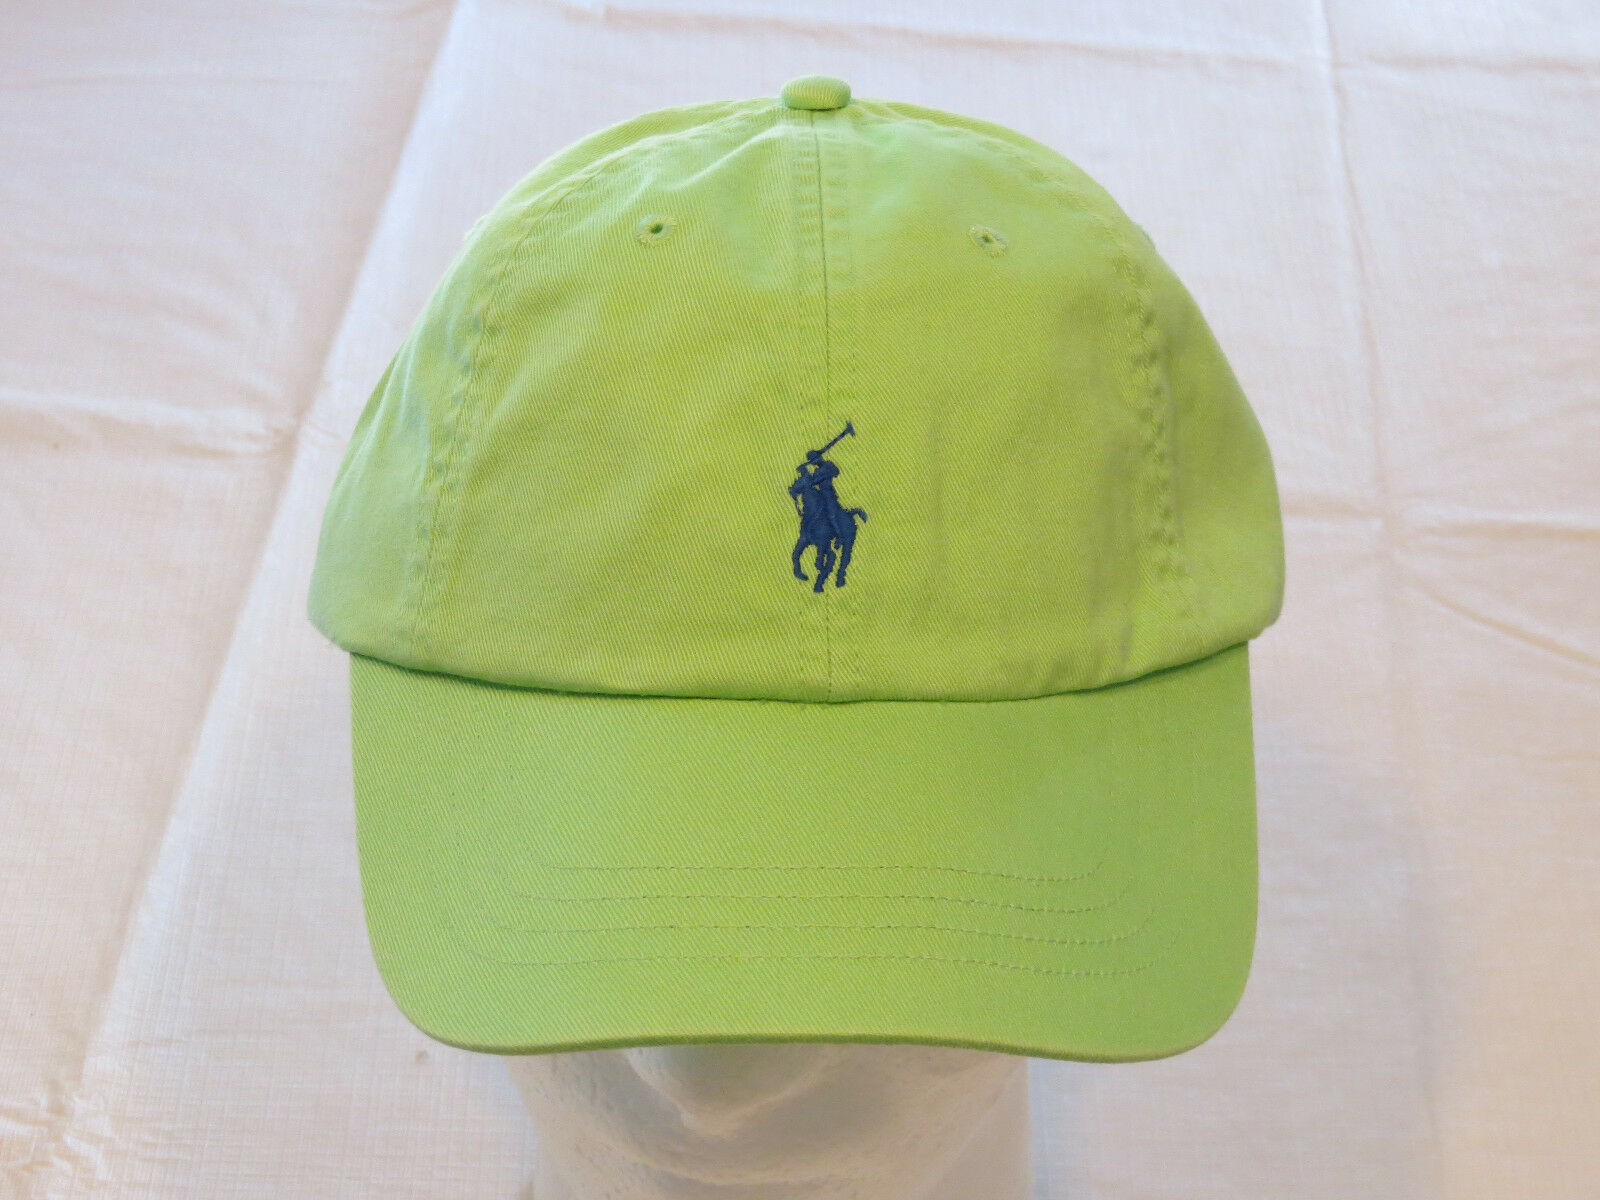 Primary image for Mens Polo Ralph Lauren hat cap golf casual Green 4331002 adjustable classic